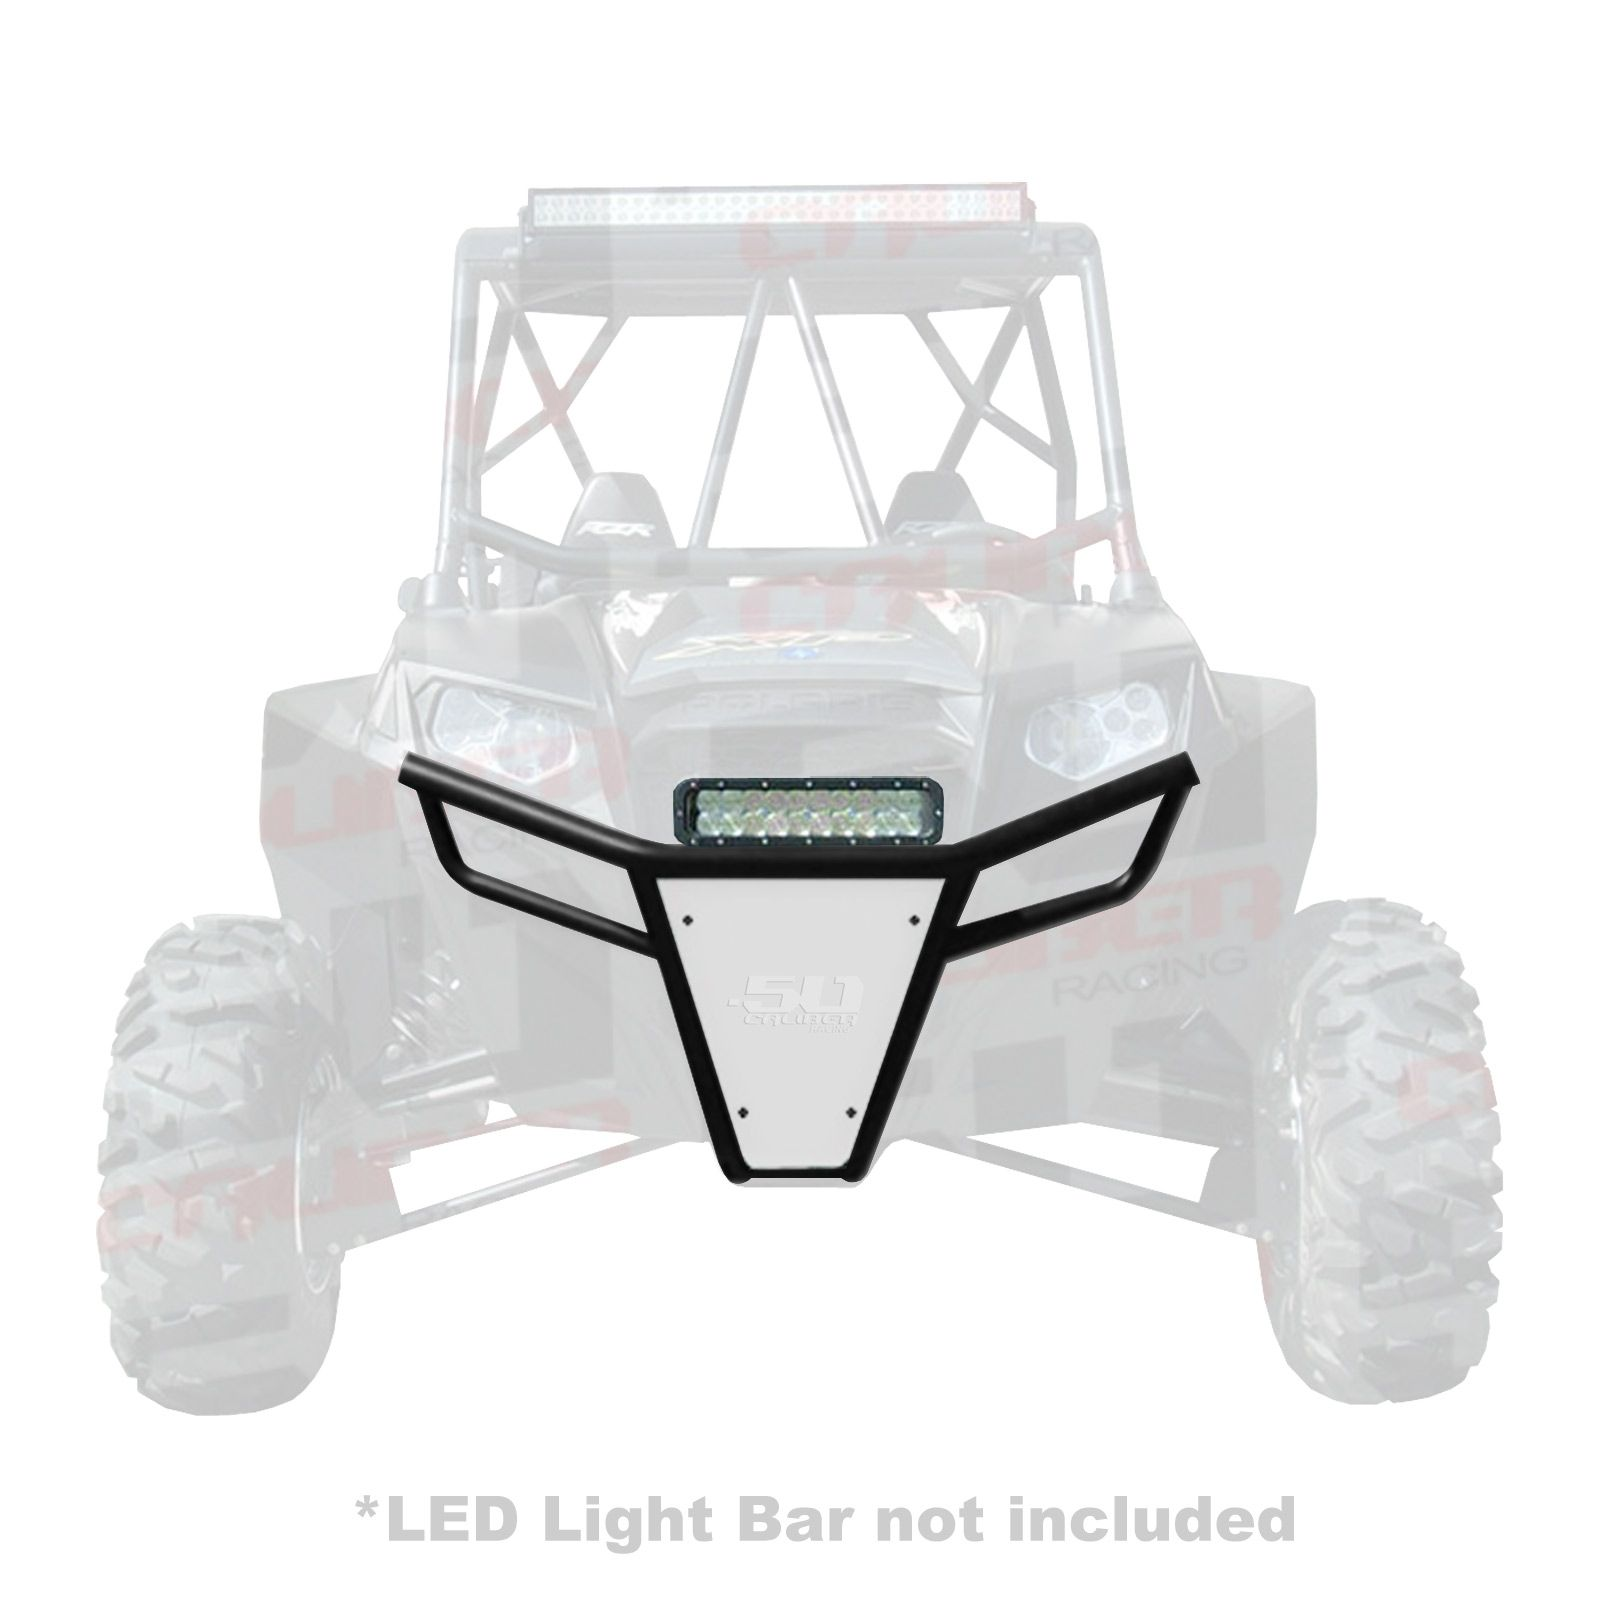 hight resolution of  50 caliber racing rzr front bumper black powdercoat frame with white aluminum skidplate and light